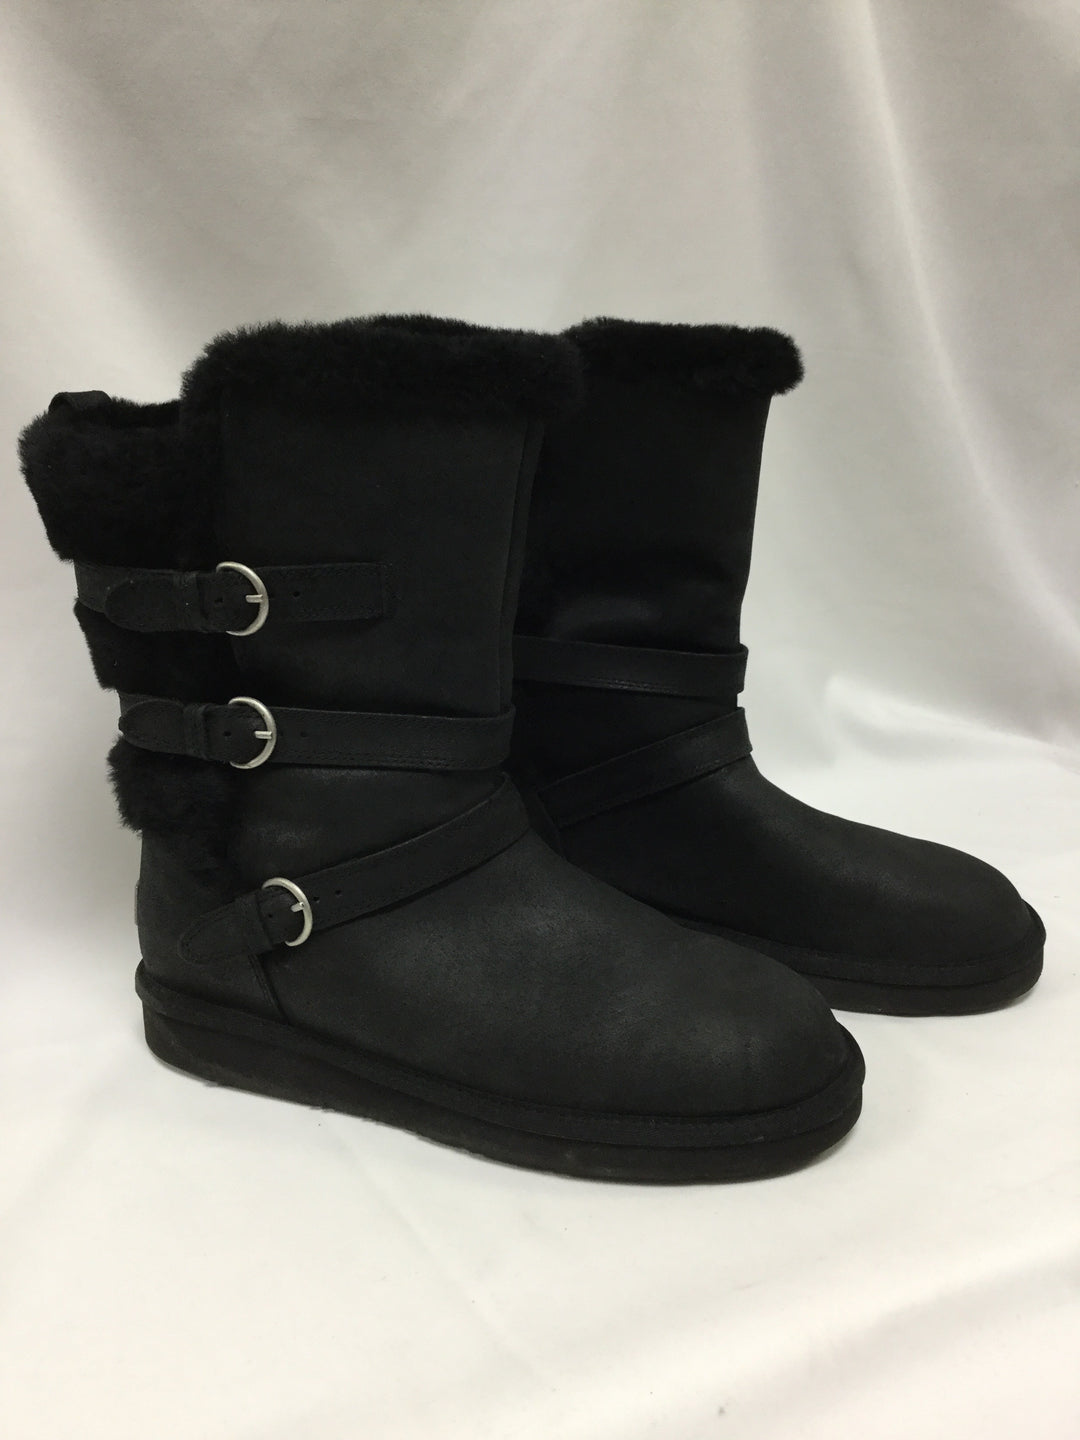 Primary Photo - BRAND: UGG <BR>STYLE: BOOTS KNEE <BR>COLOR: BLACK <BR>SIZE: 11 <BR>SKU: 155-15599-235498